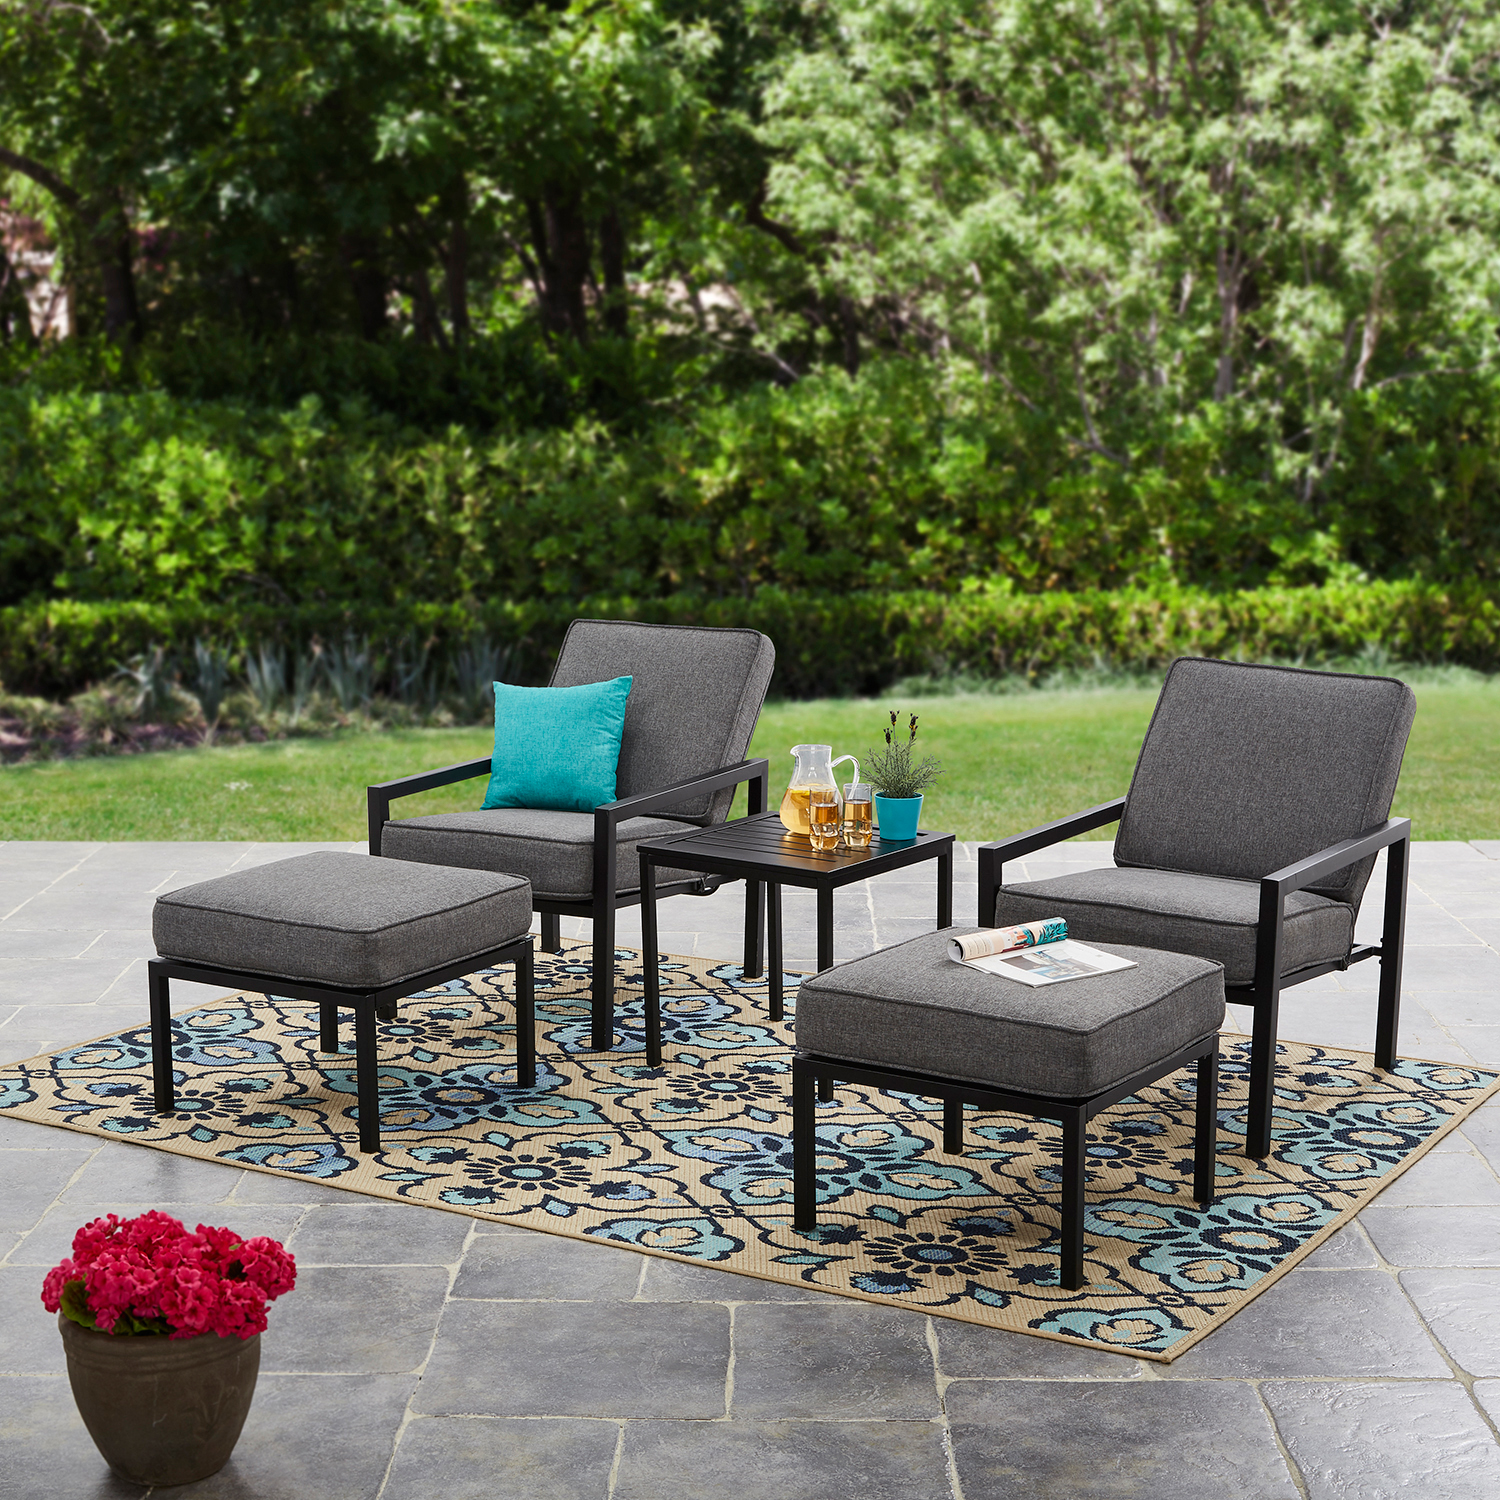 Mainstays Moss Falls 5pc Outdoor Chat Set With Gray Cushions